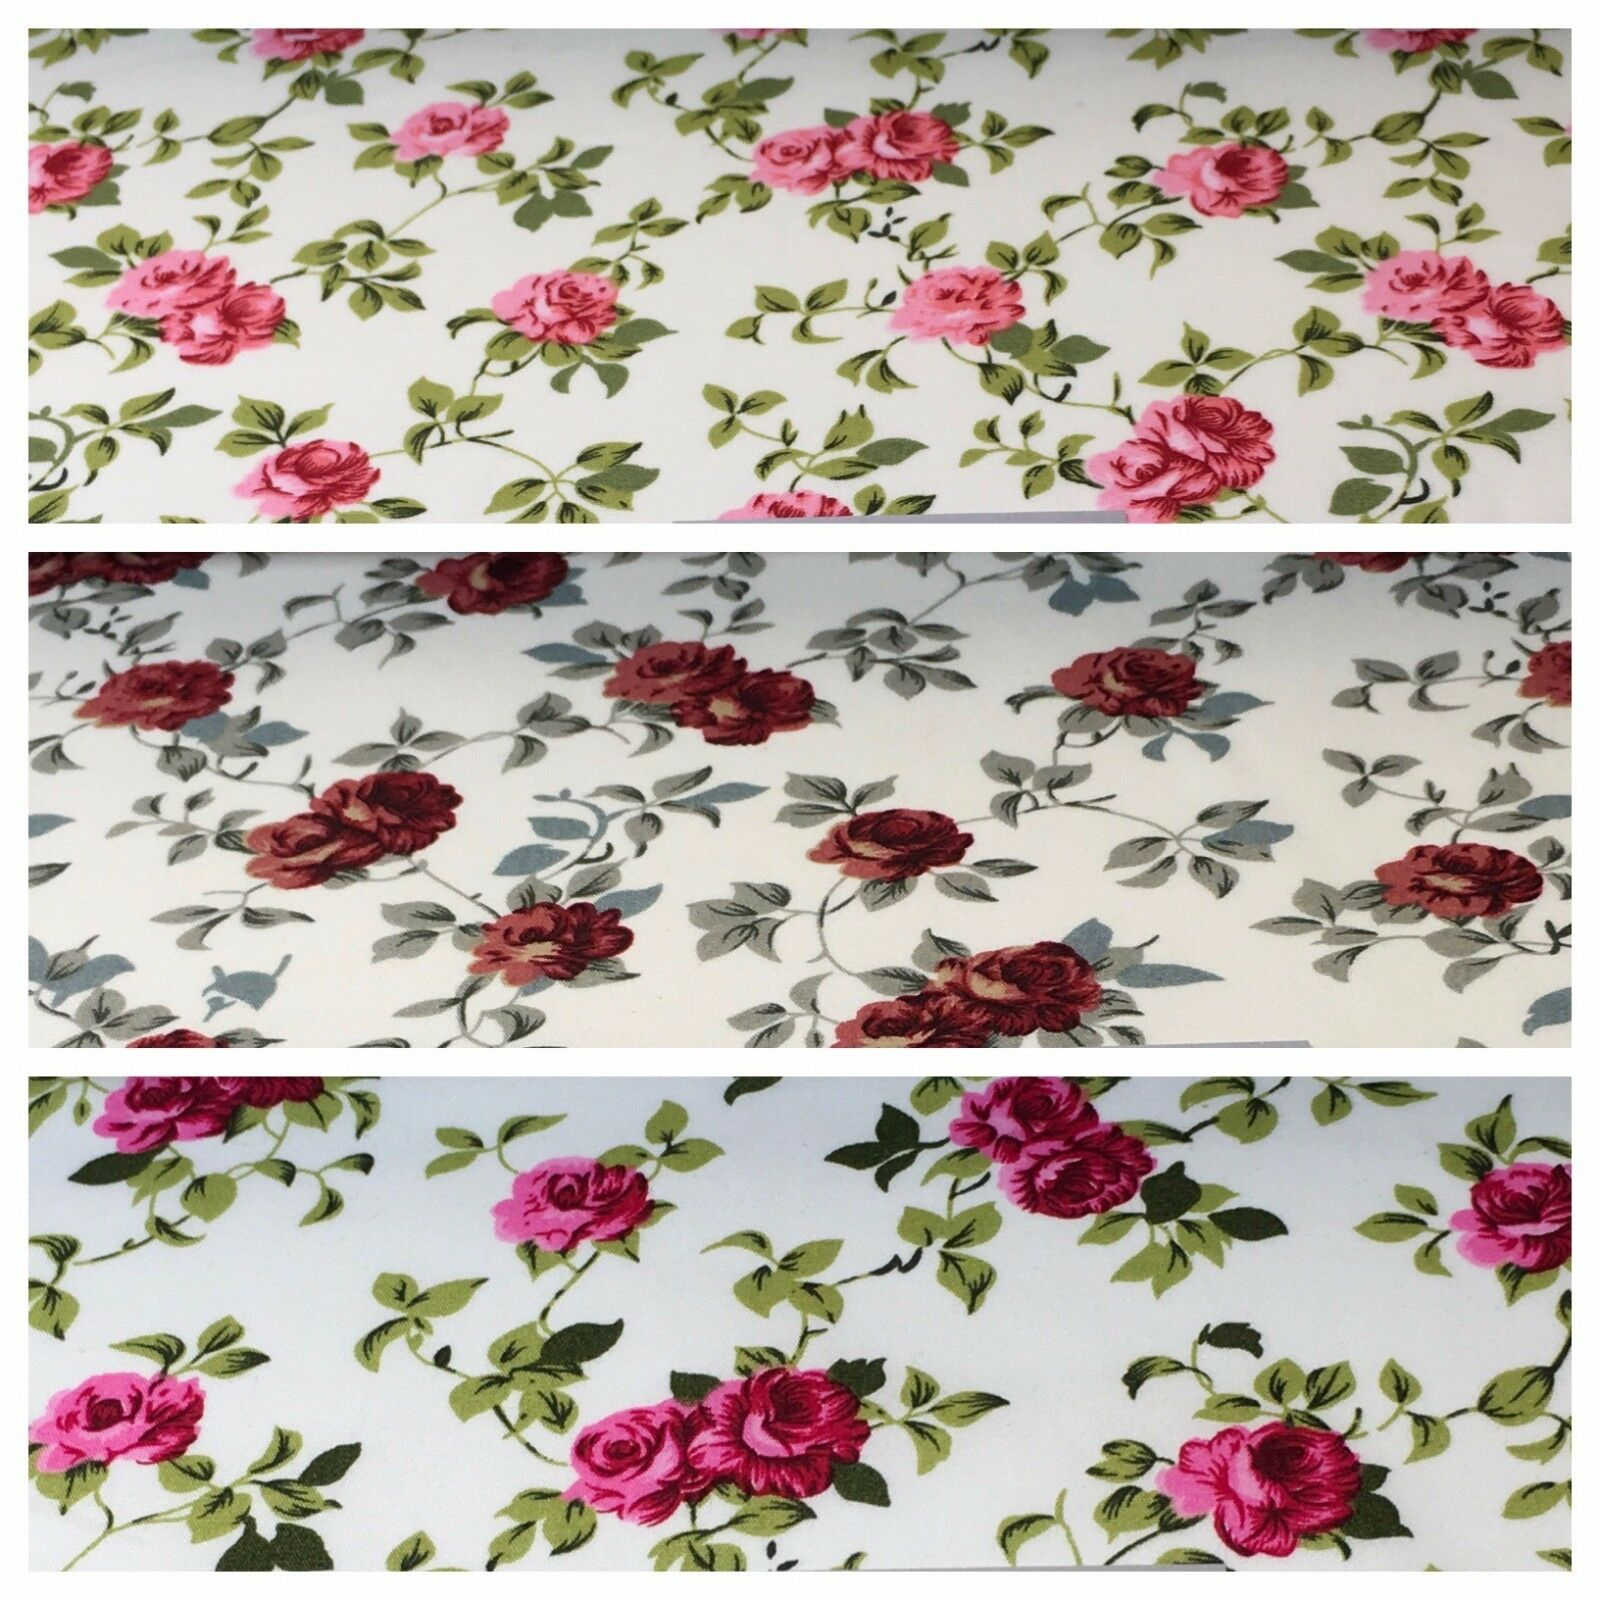 "Floral Vintage Shabby Chic 100% Cotton printed fabric 44"" M743 Mtex"